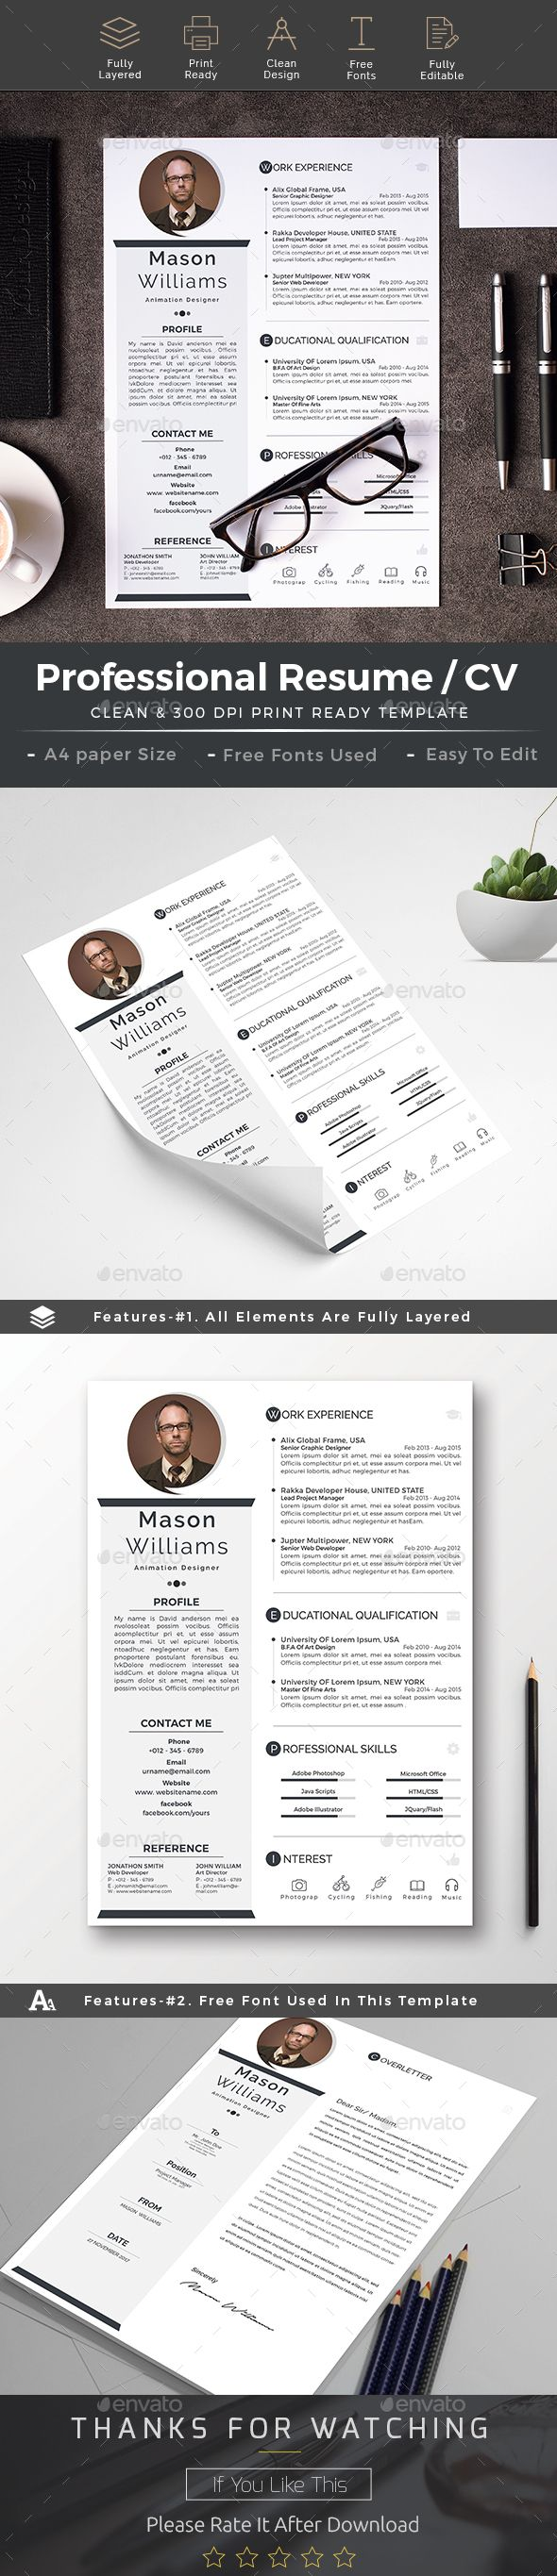 Resume cv word 599 best CvResumesPortfolio images